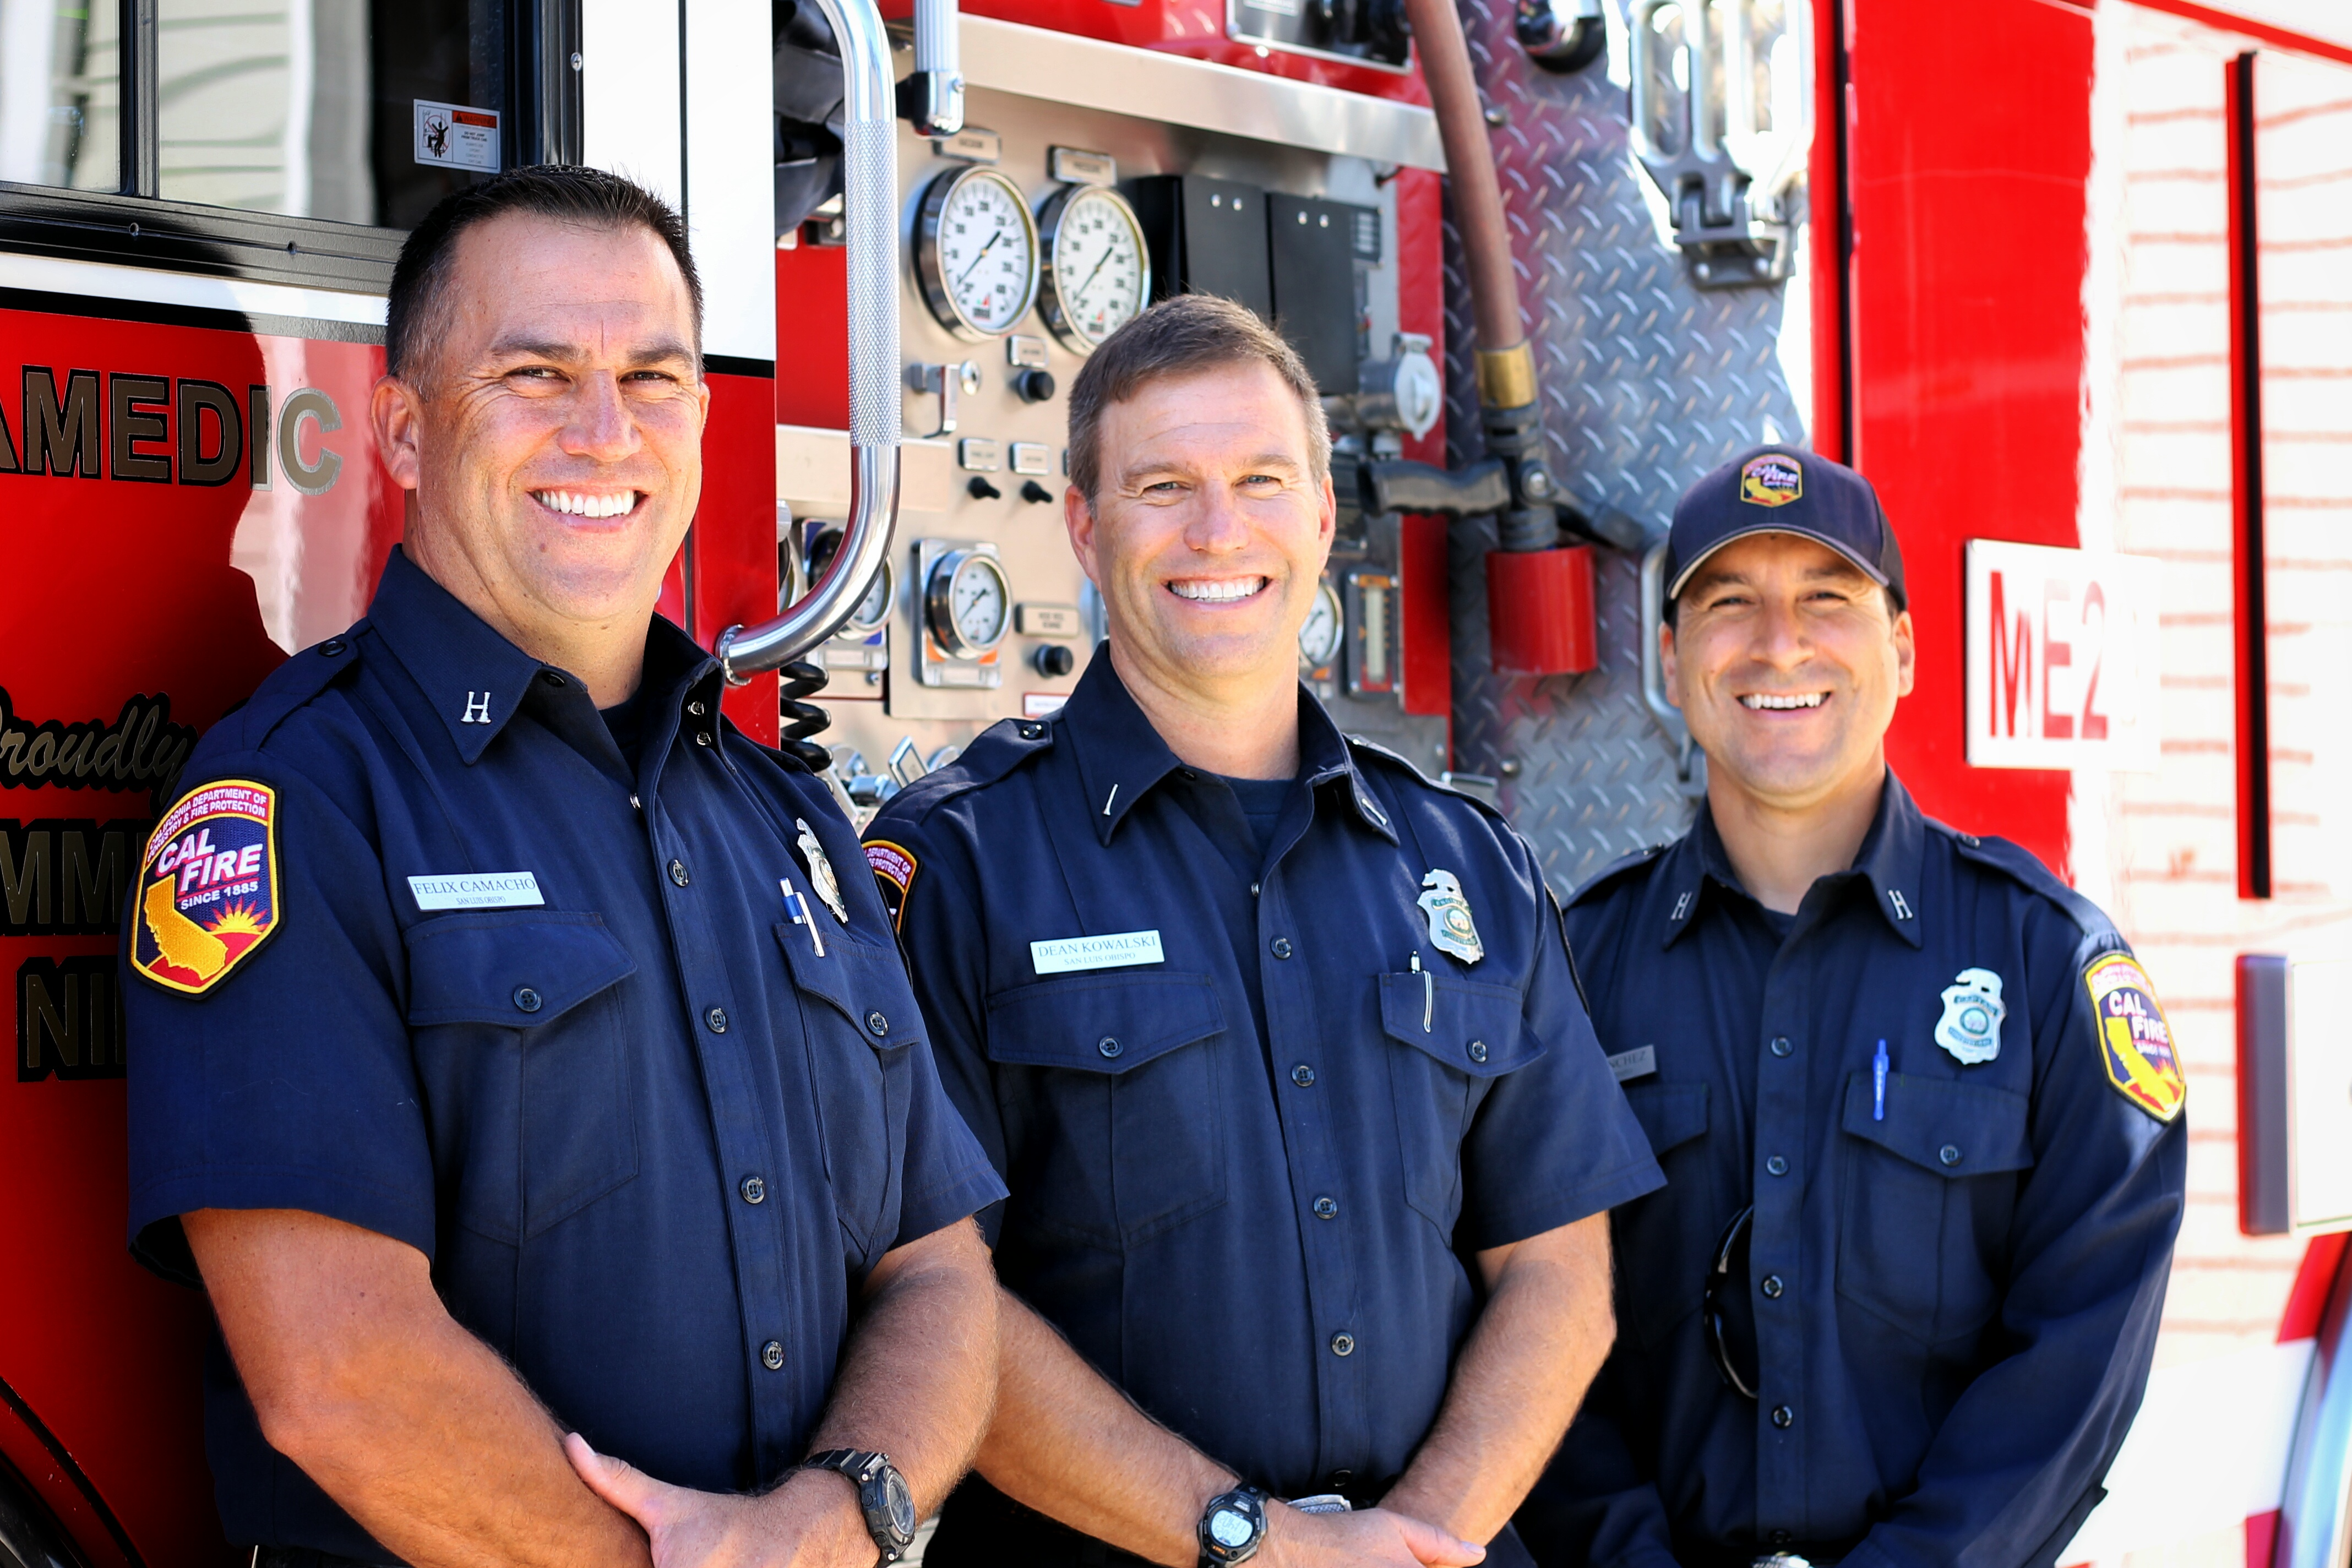 Members of the San Luis Obispo County Fire Department stand near a fire engine at the Nipomo station. CoastHills donated more than $1,300 to the Firefighters Benevolent Fund on International Credit Union Day 2015.